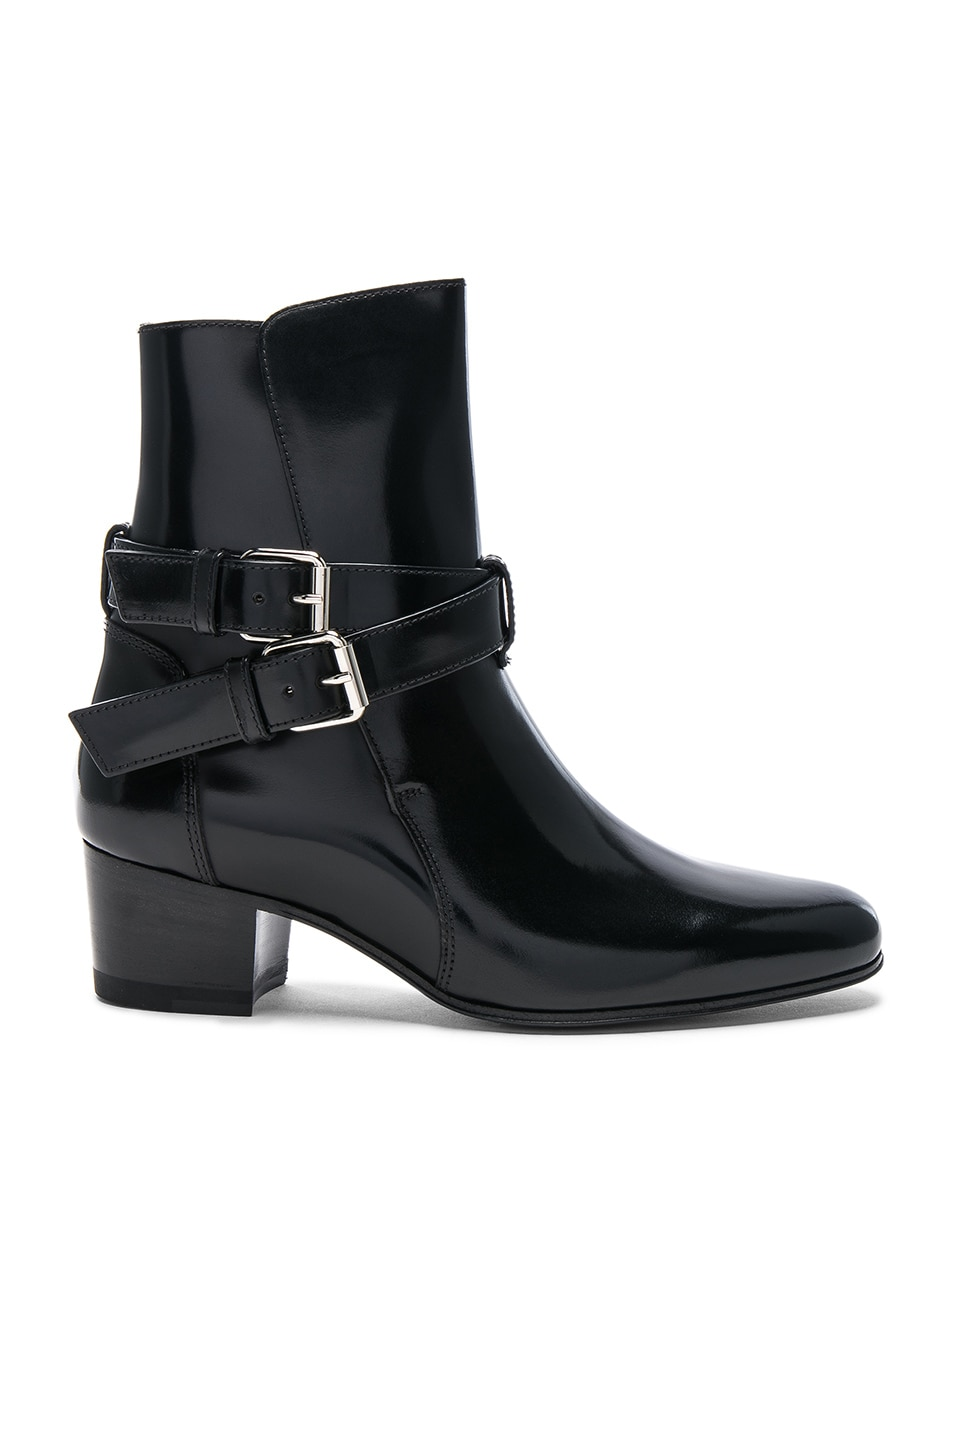 Image 1 of Amiri Buckle Leather Boots in Black Shine